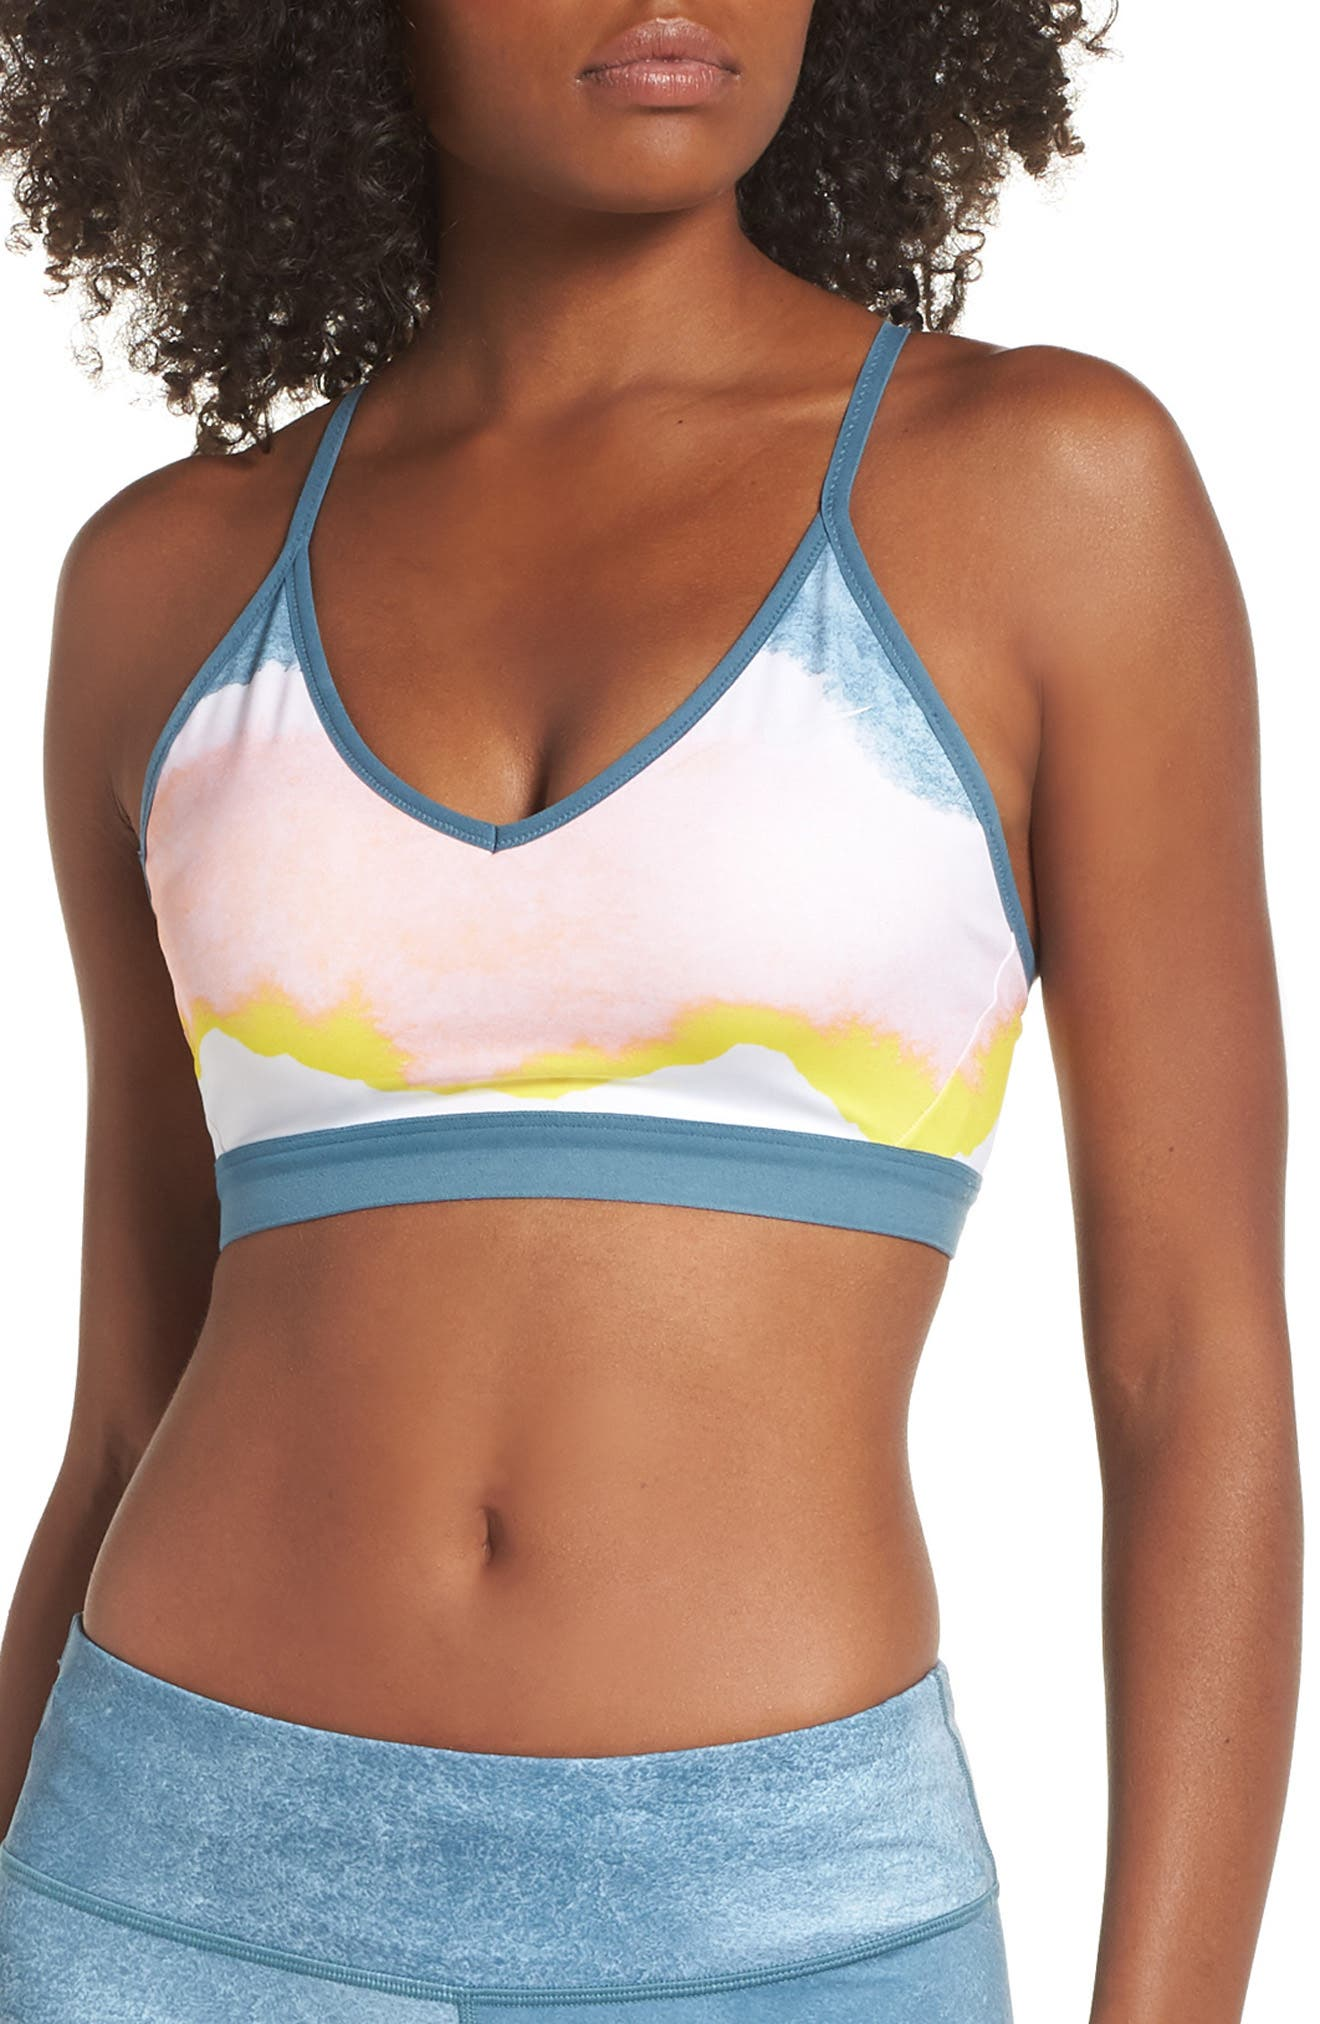 Indy Artist Sports Bra,                             Main thumbnail 1, color,                             WHITE/ CELESTIAL TEAL/ WHITE